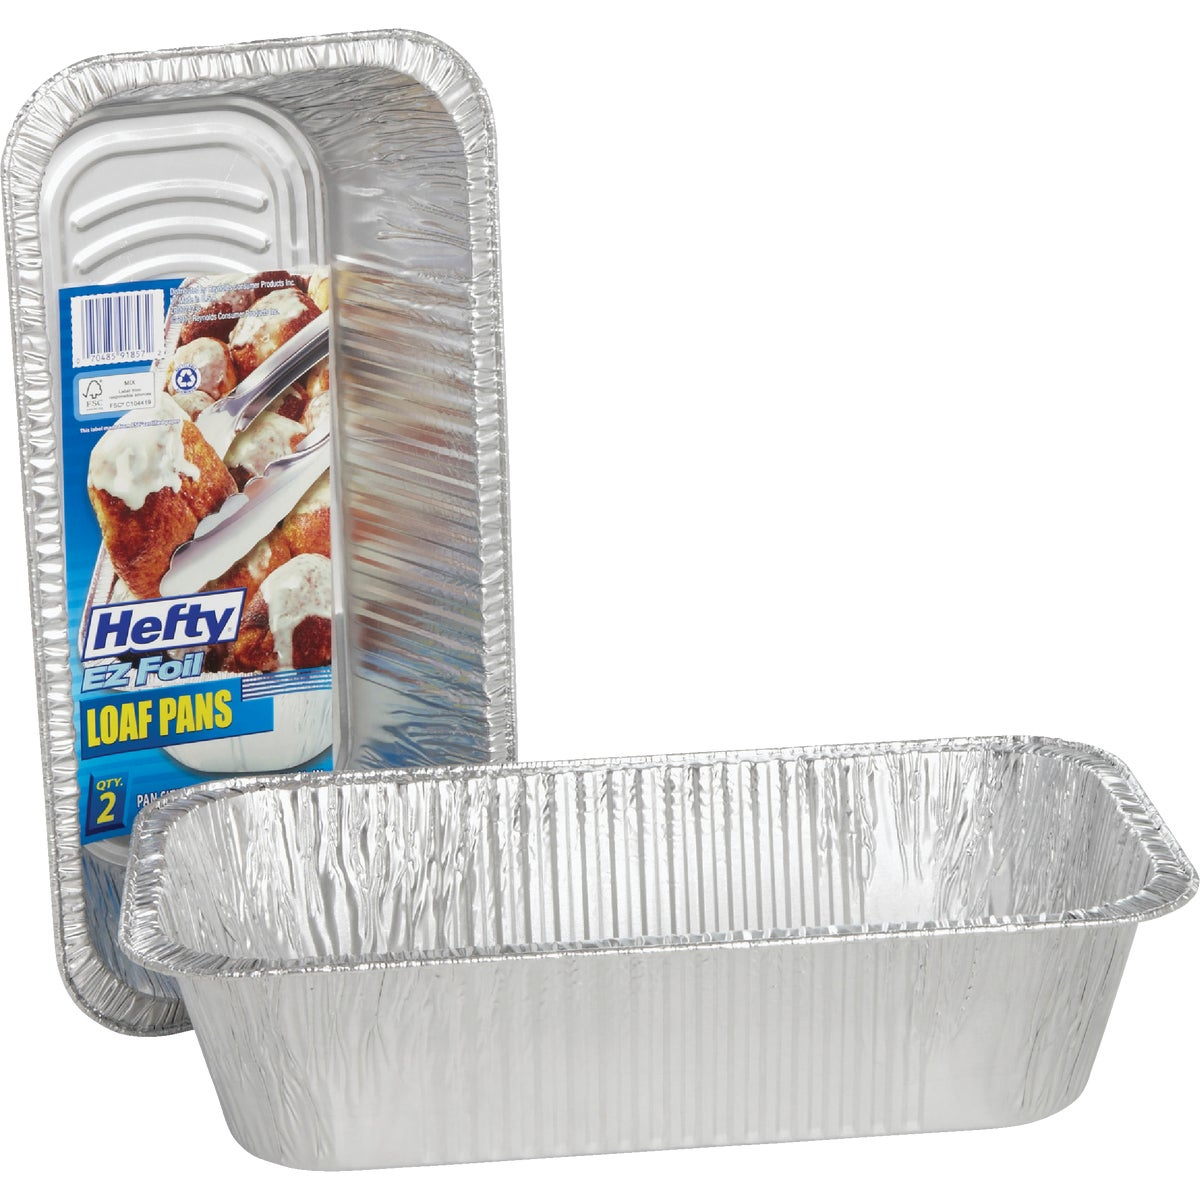 GIANT LOAF PAN - 91857 by Pactiv/ez Foil